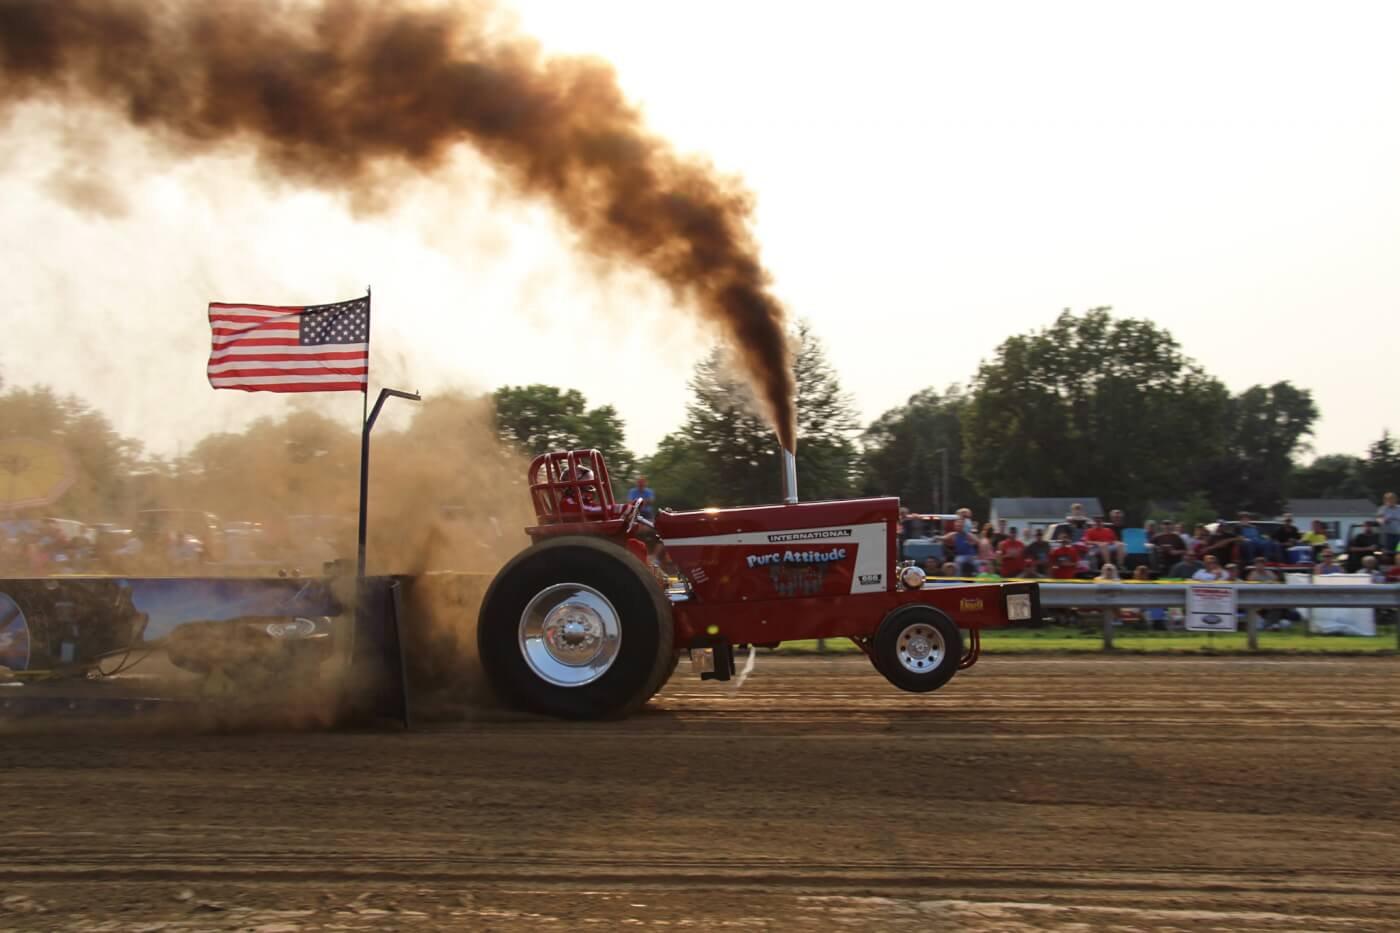 Don Newton's IH666 was one of many red machines taking home wins this year. His 341-foot hook gave him the win in the East Central Iowa Pullers Association's (ECIPA) 6,700-pound Light Limited Super Stock Class.